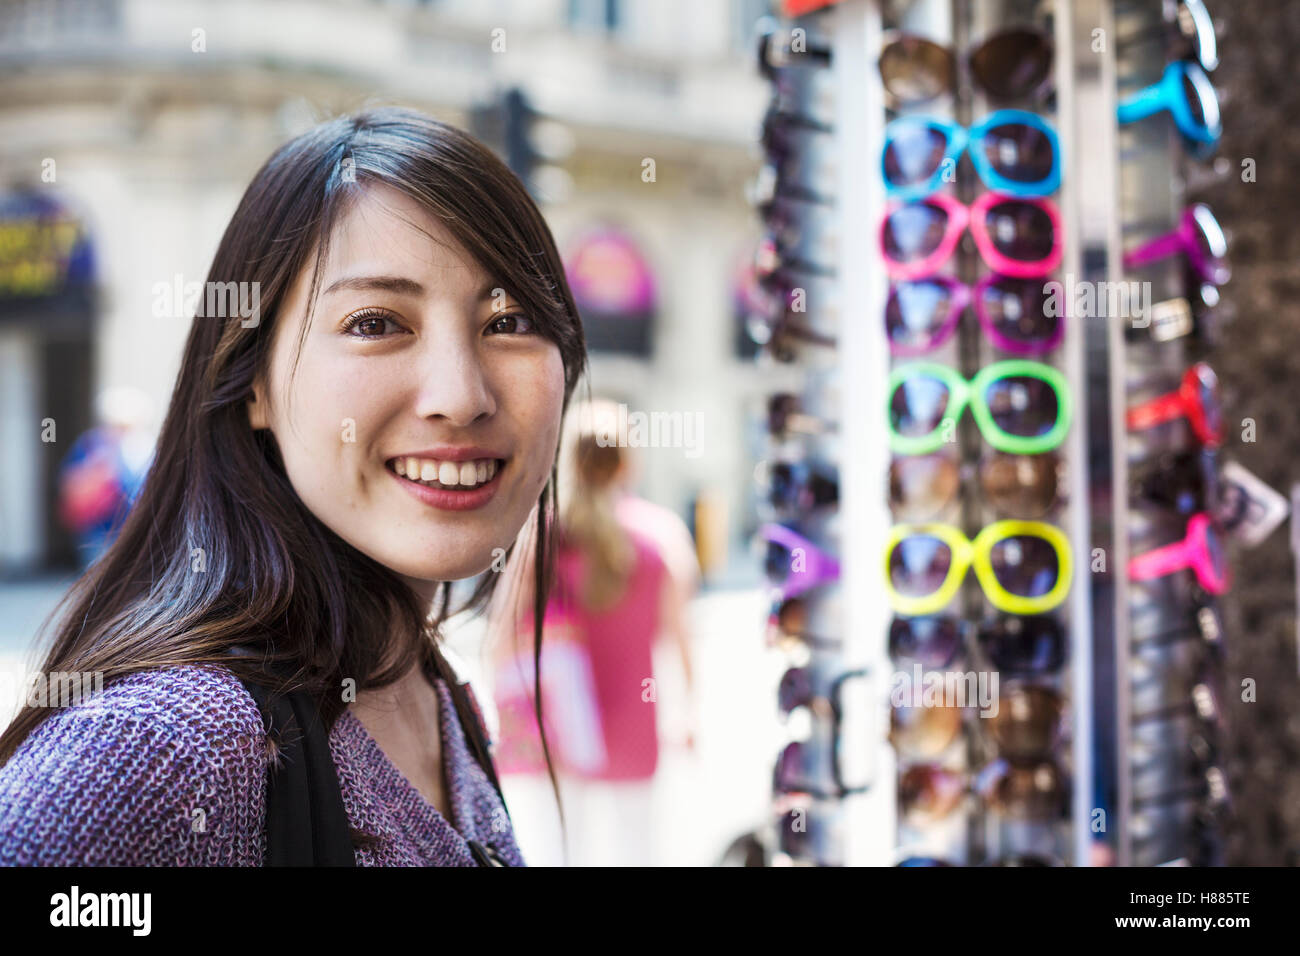 A Japanese woman trying on sunglasses in London, a summer tourist visitor. - Stock Image